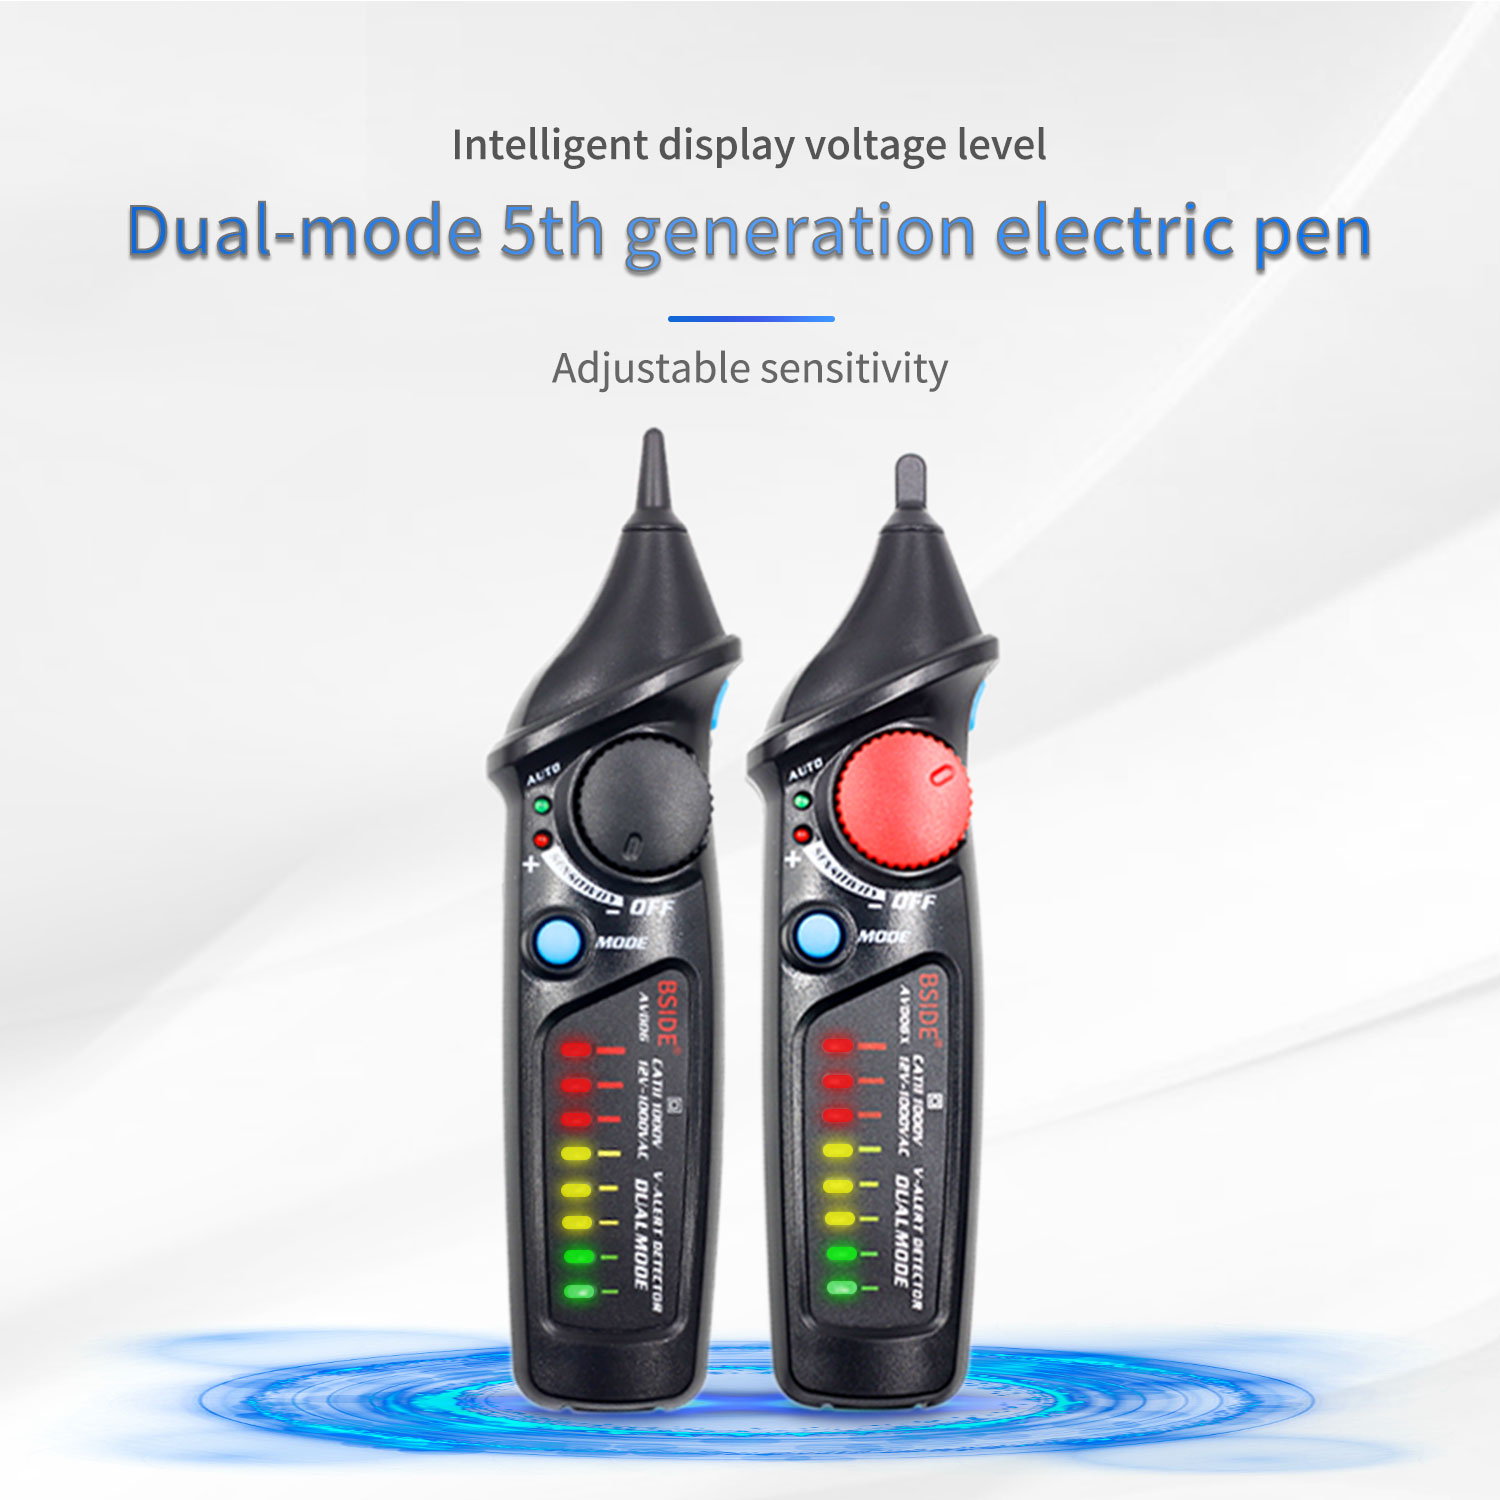 Non Contact Voltage Detector Tester BSIDE AVD06 Socket Wall AC Power Outlet Live Test Pen Indicator 12~1000V match Multimeter|Voltage Meters| - AliExpress